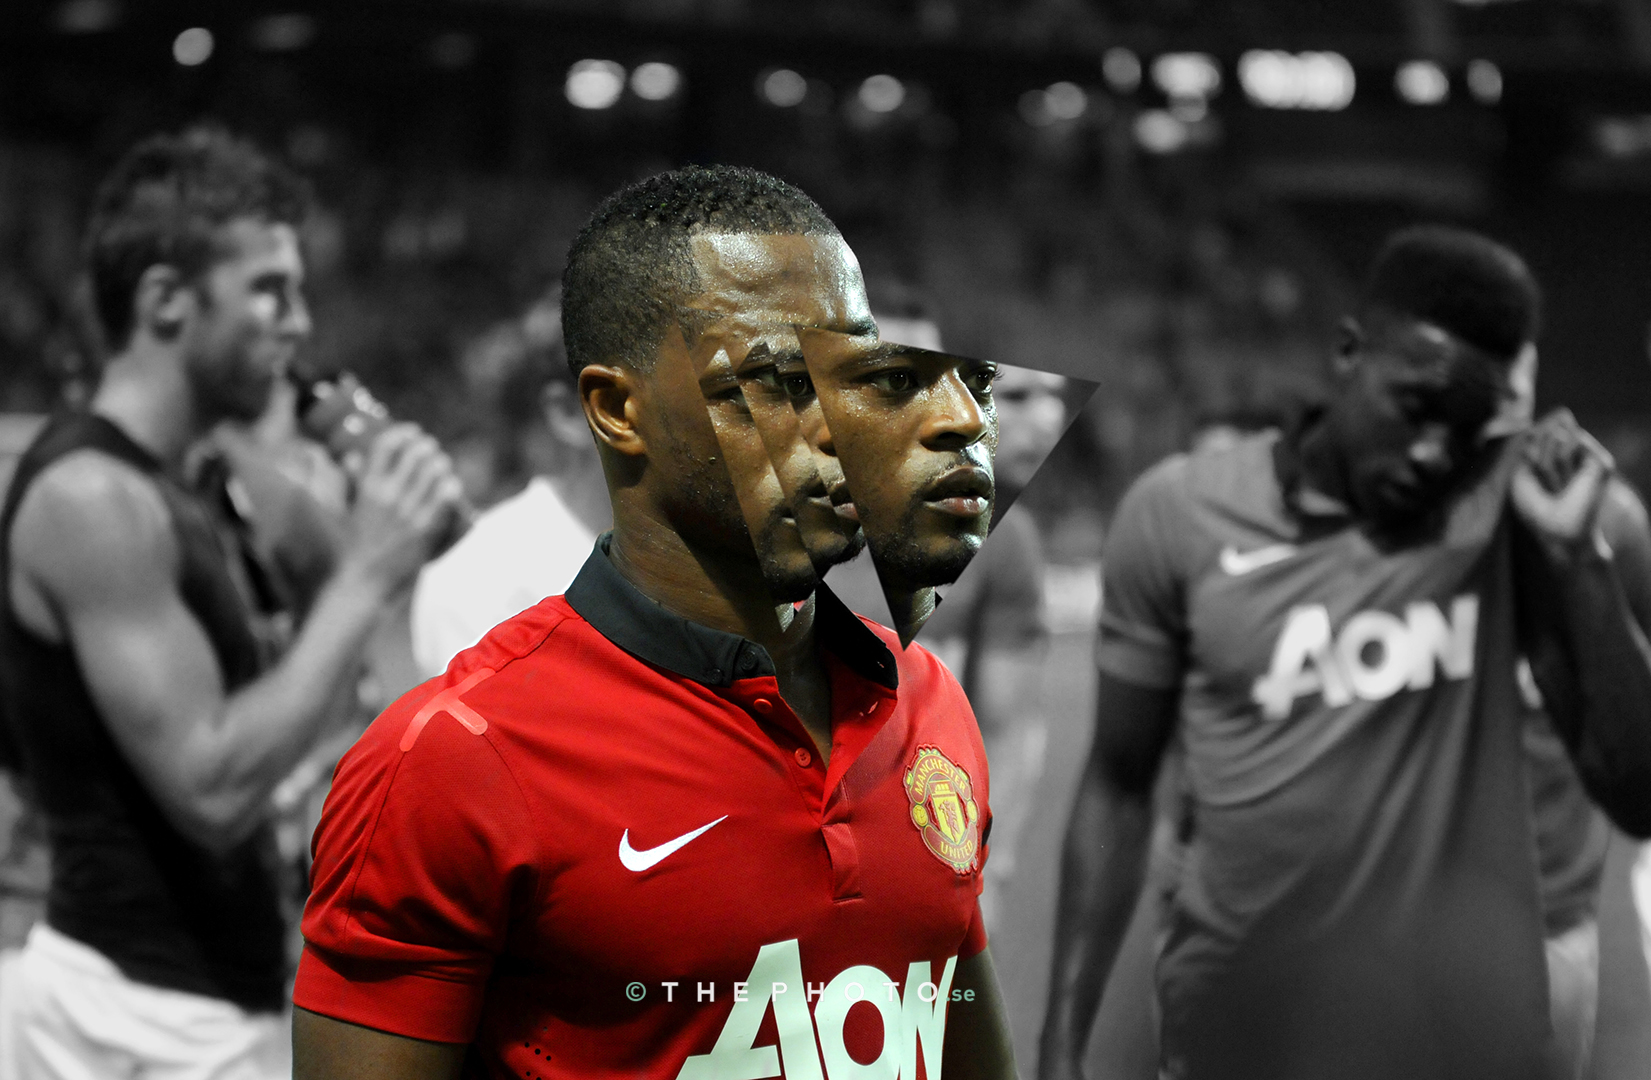 Forevra Red. Patrice Evra's nickname given by Manchester United fans.